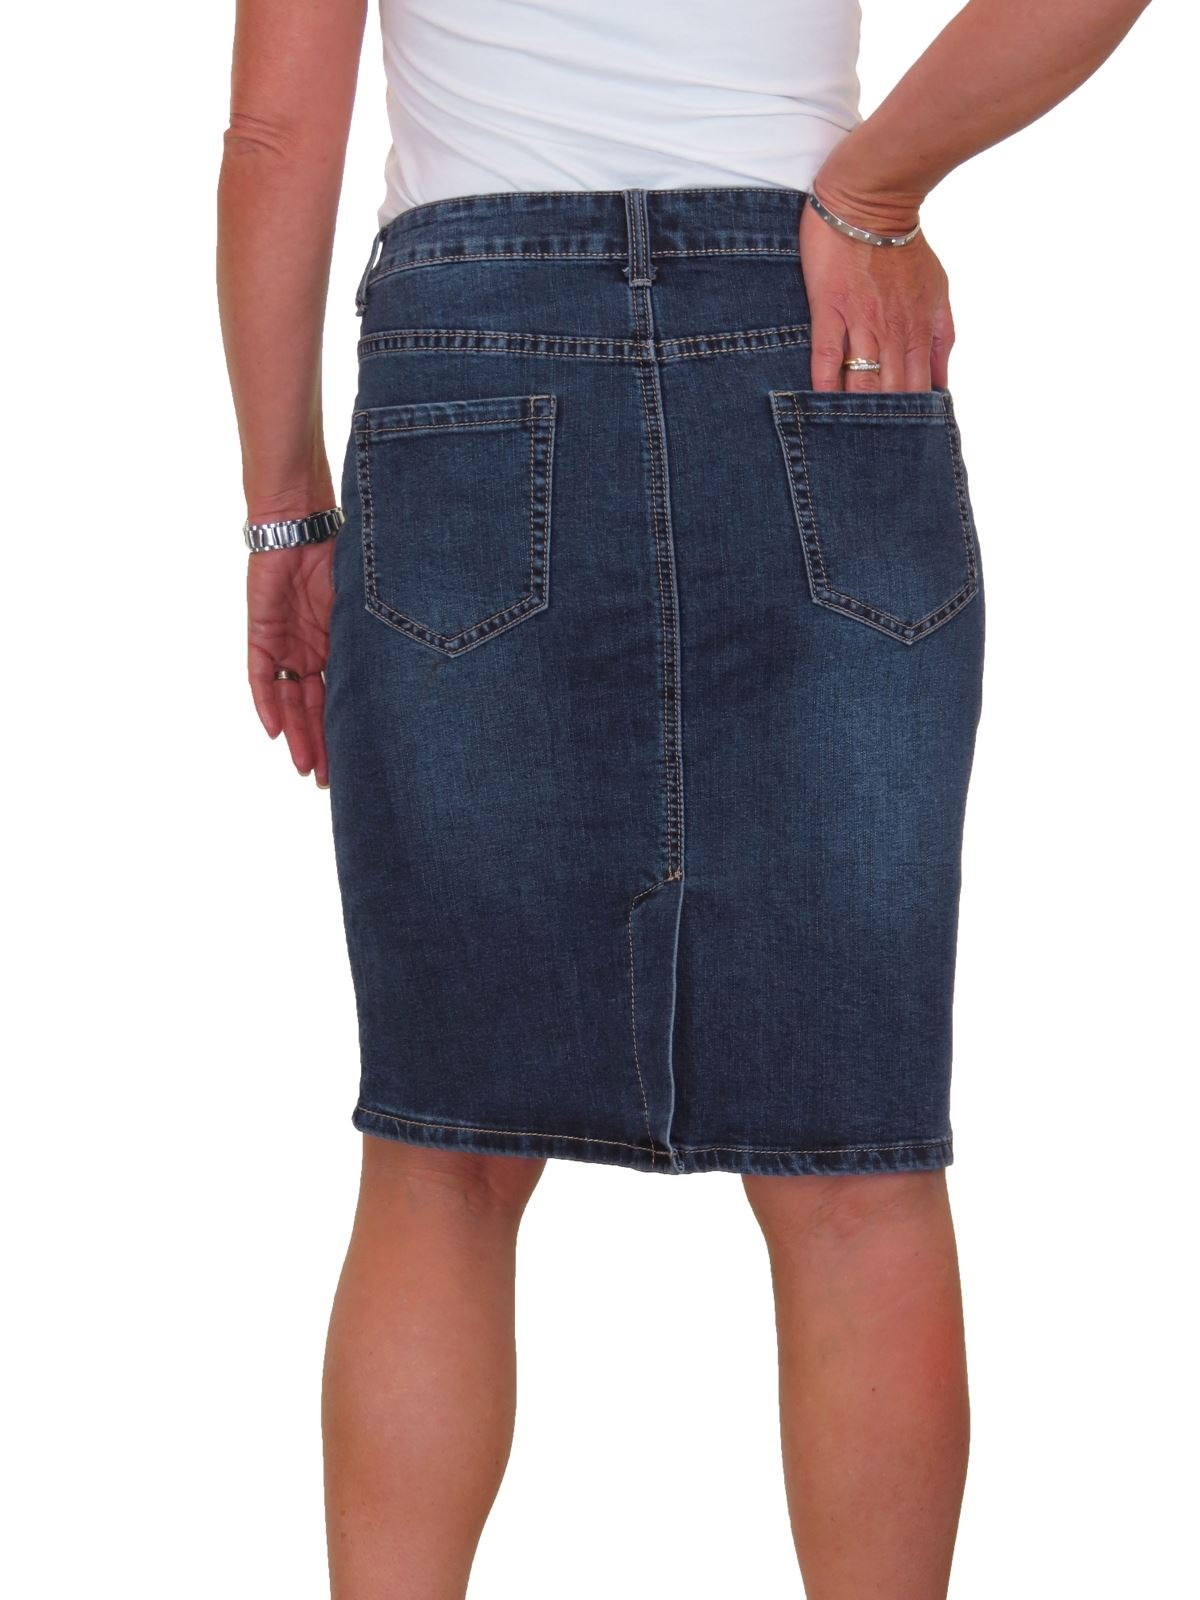 ICE-Stretch-Denim-Above-Knee-Jeans-Pencil-Skirt-Faded-Wash-10-18 thumbnail 4